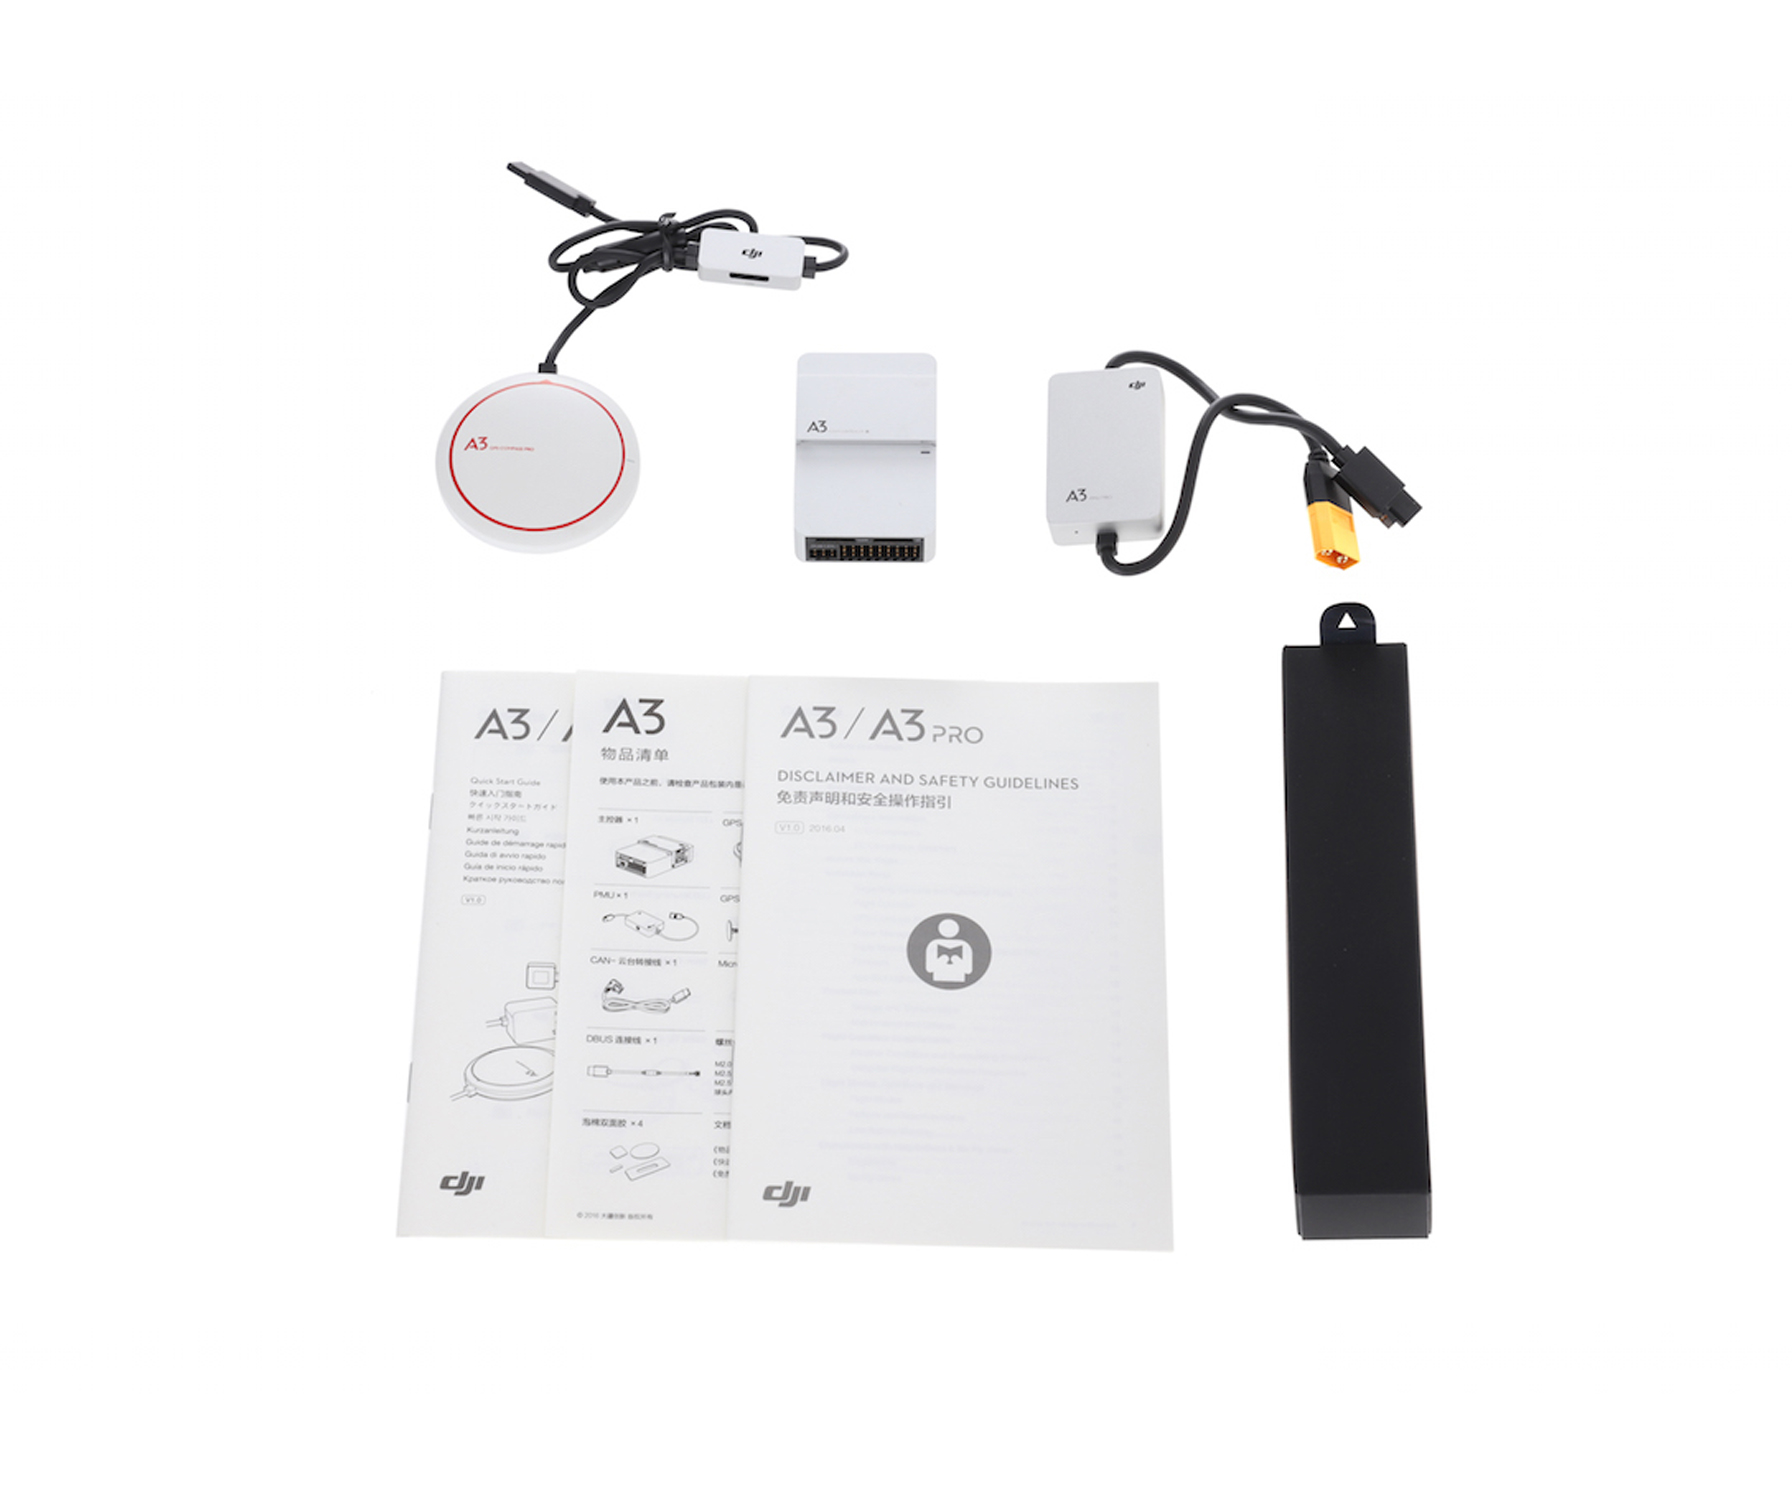 Dji A3 Flight Controller For Multi Rotor Drones